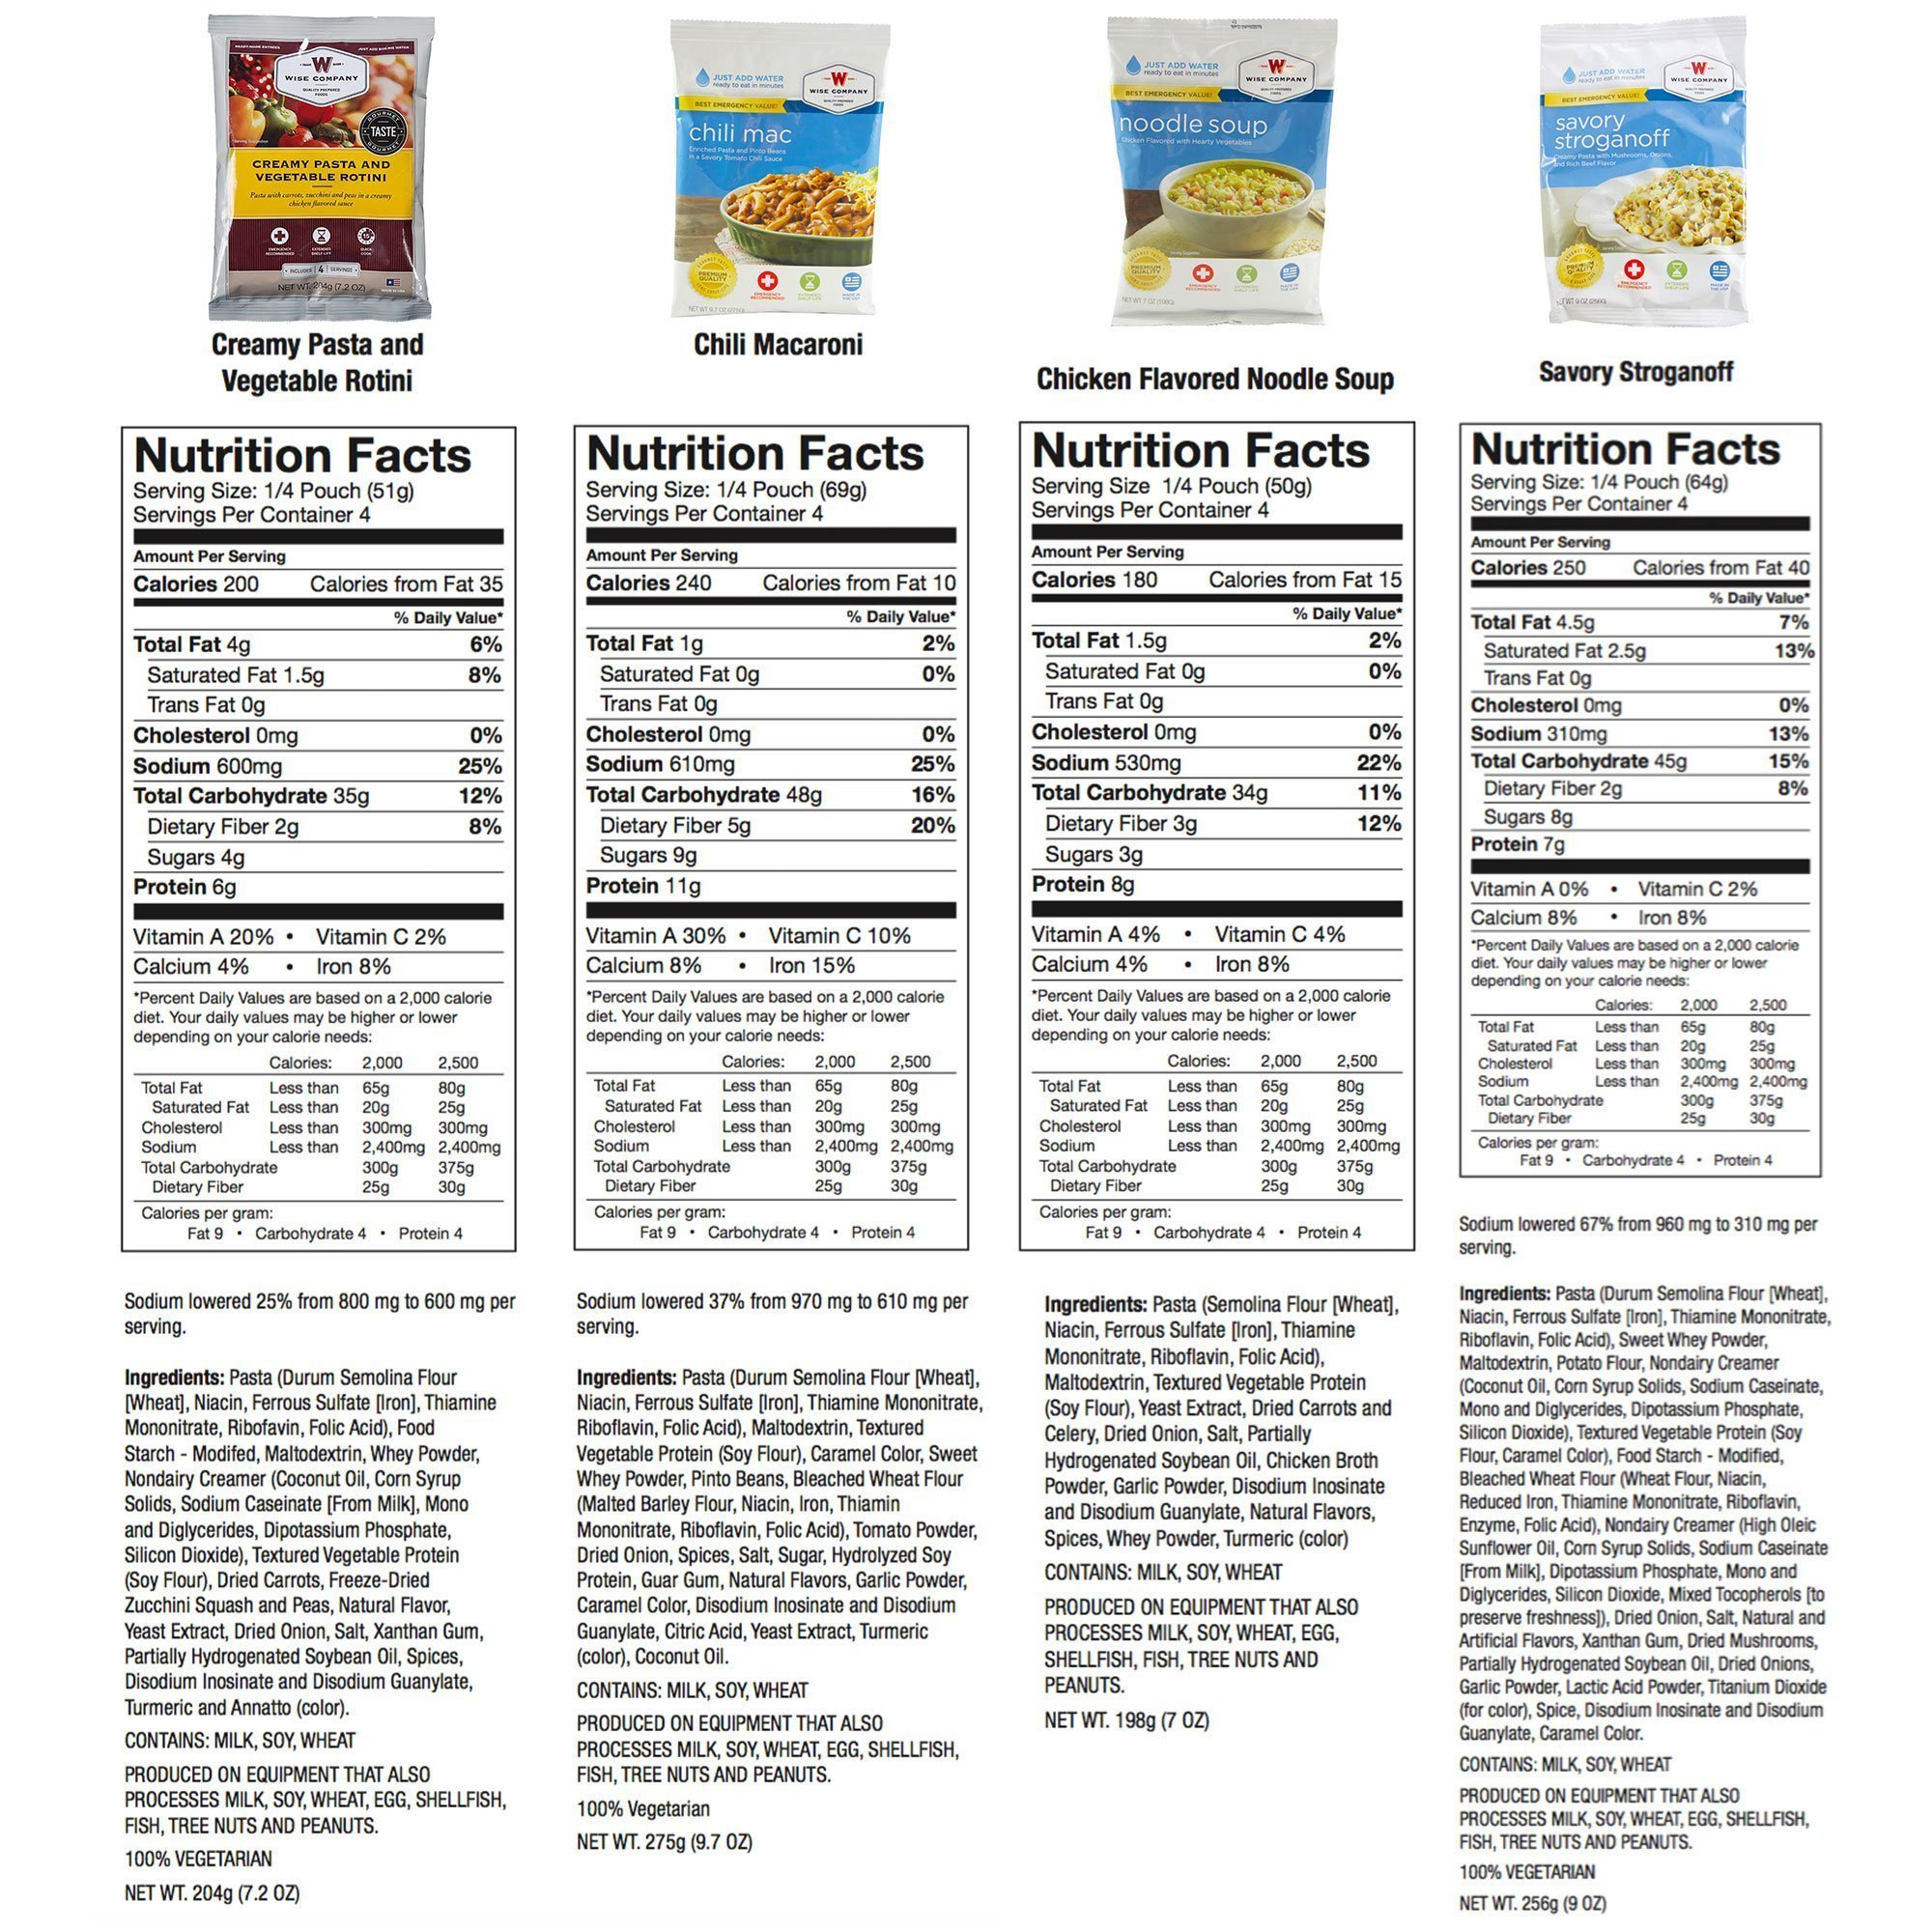 Wise Food Storage Nutritional Information 7